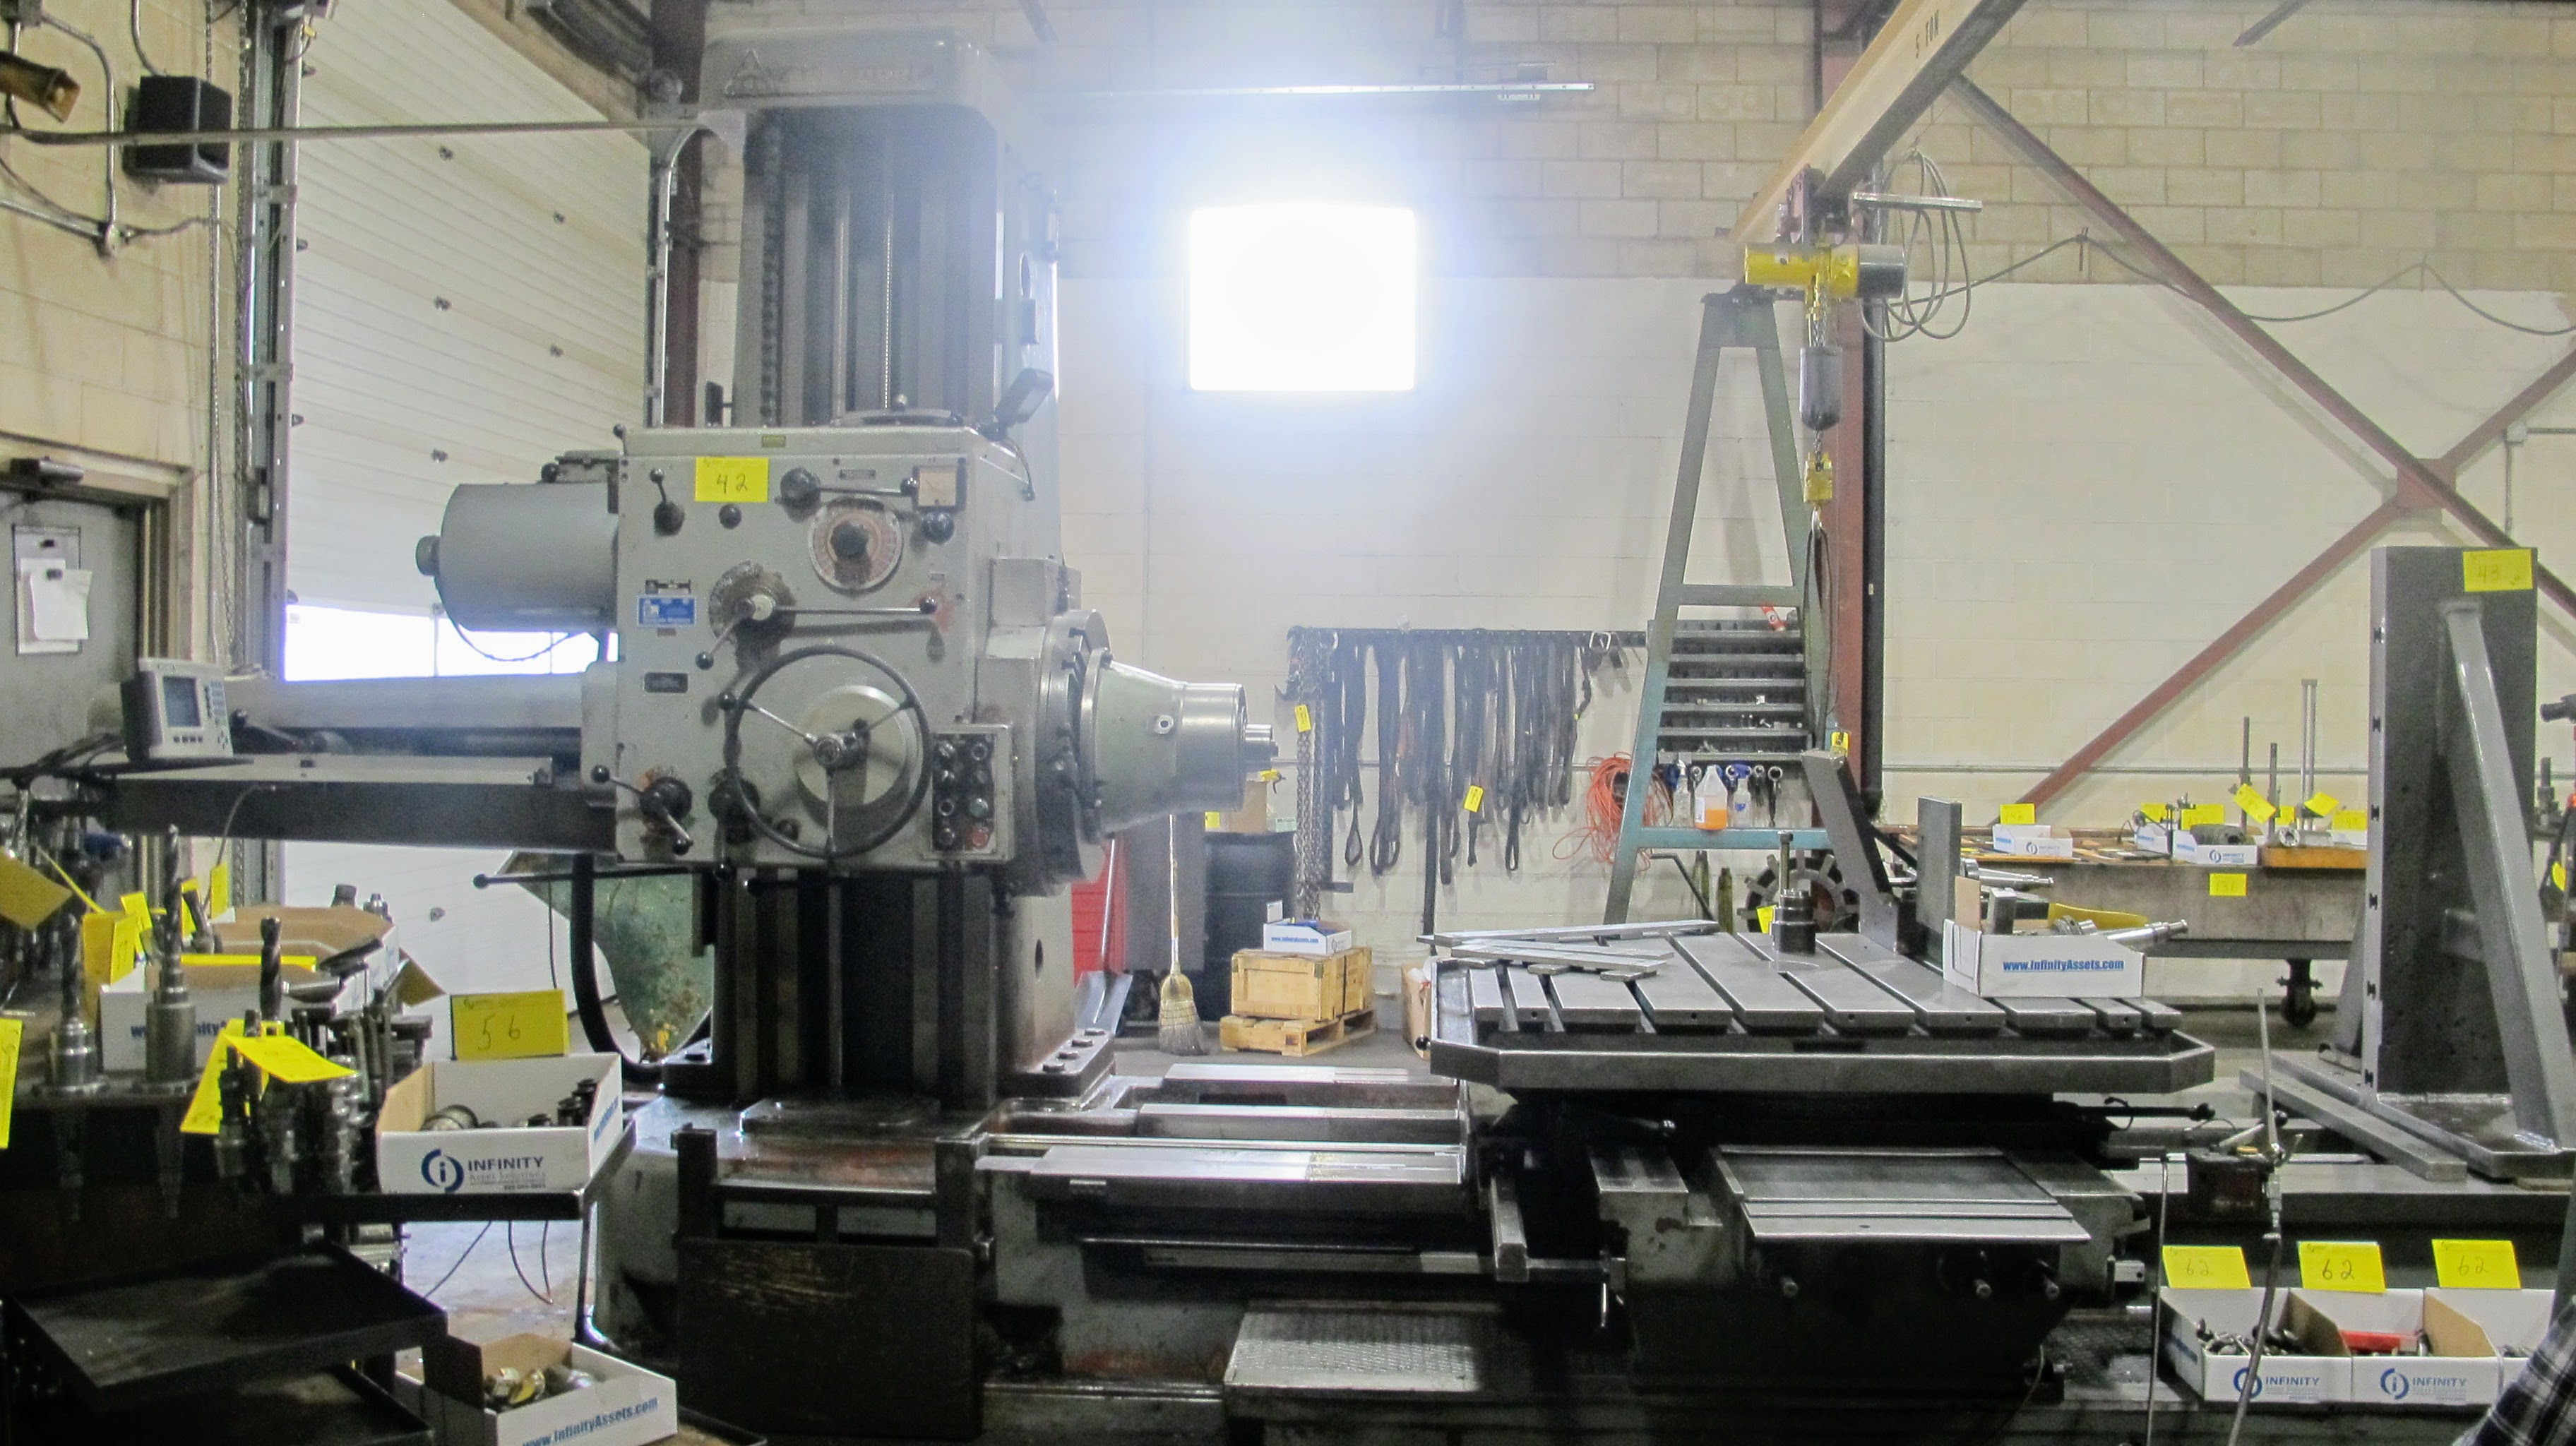 "TOS W100 HORIZONTAL BORING MILL, ACU-RITE 4-AXIS DRO, 4"" SPINDLE, 14 TO 1,120 RPM, 49"" X 49"" POWERED - Image 5 of 12"